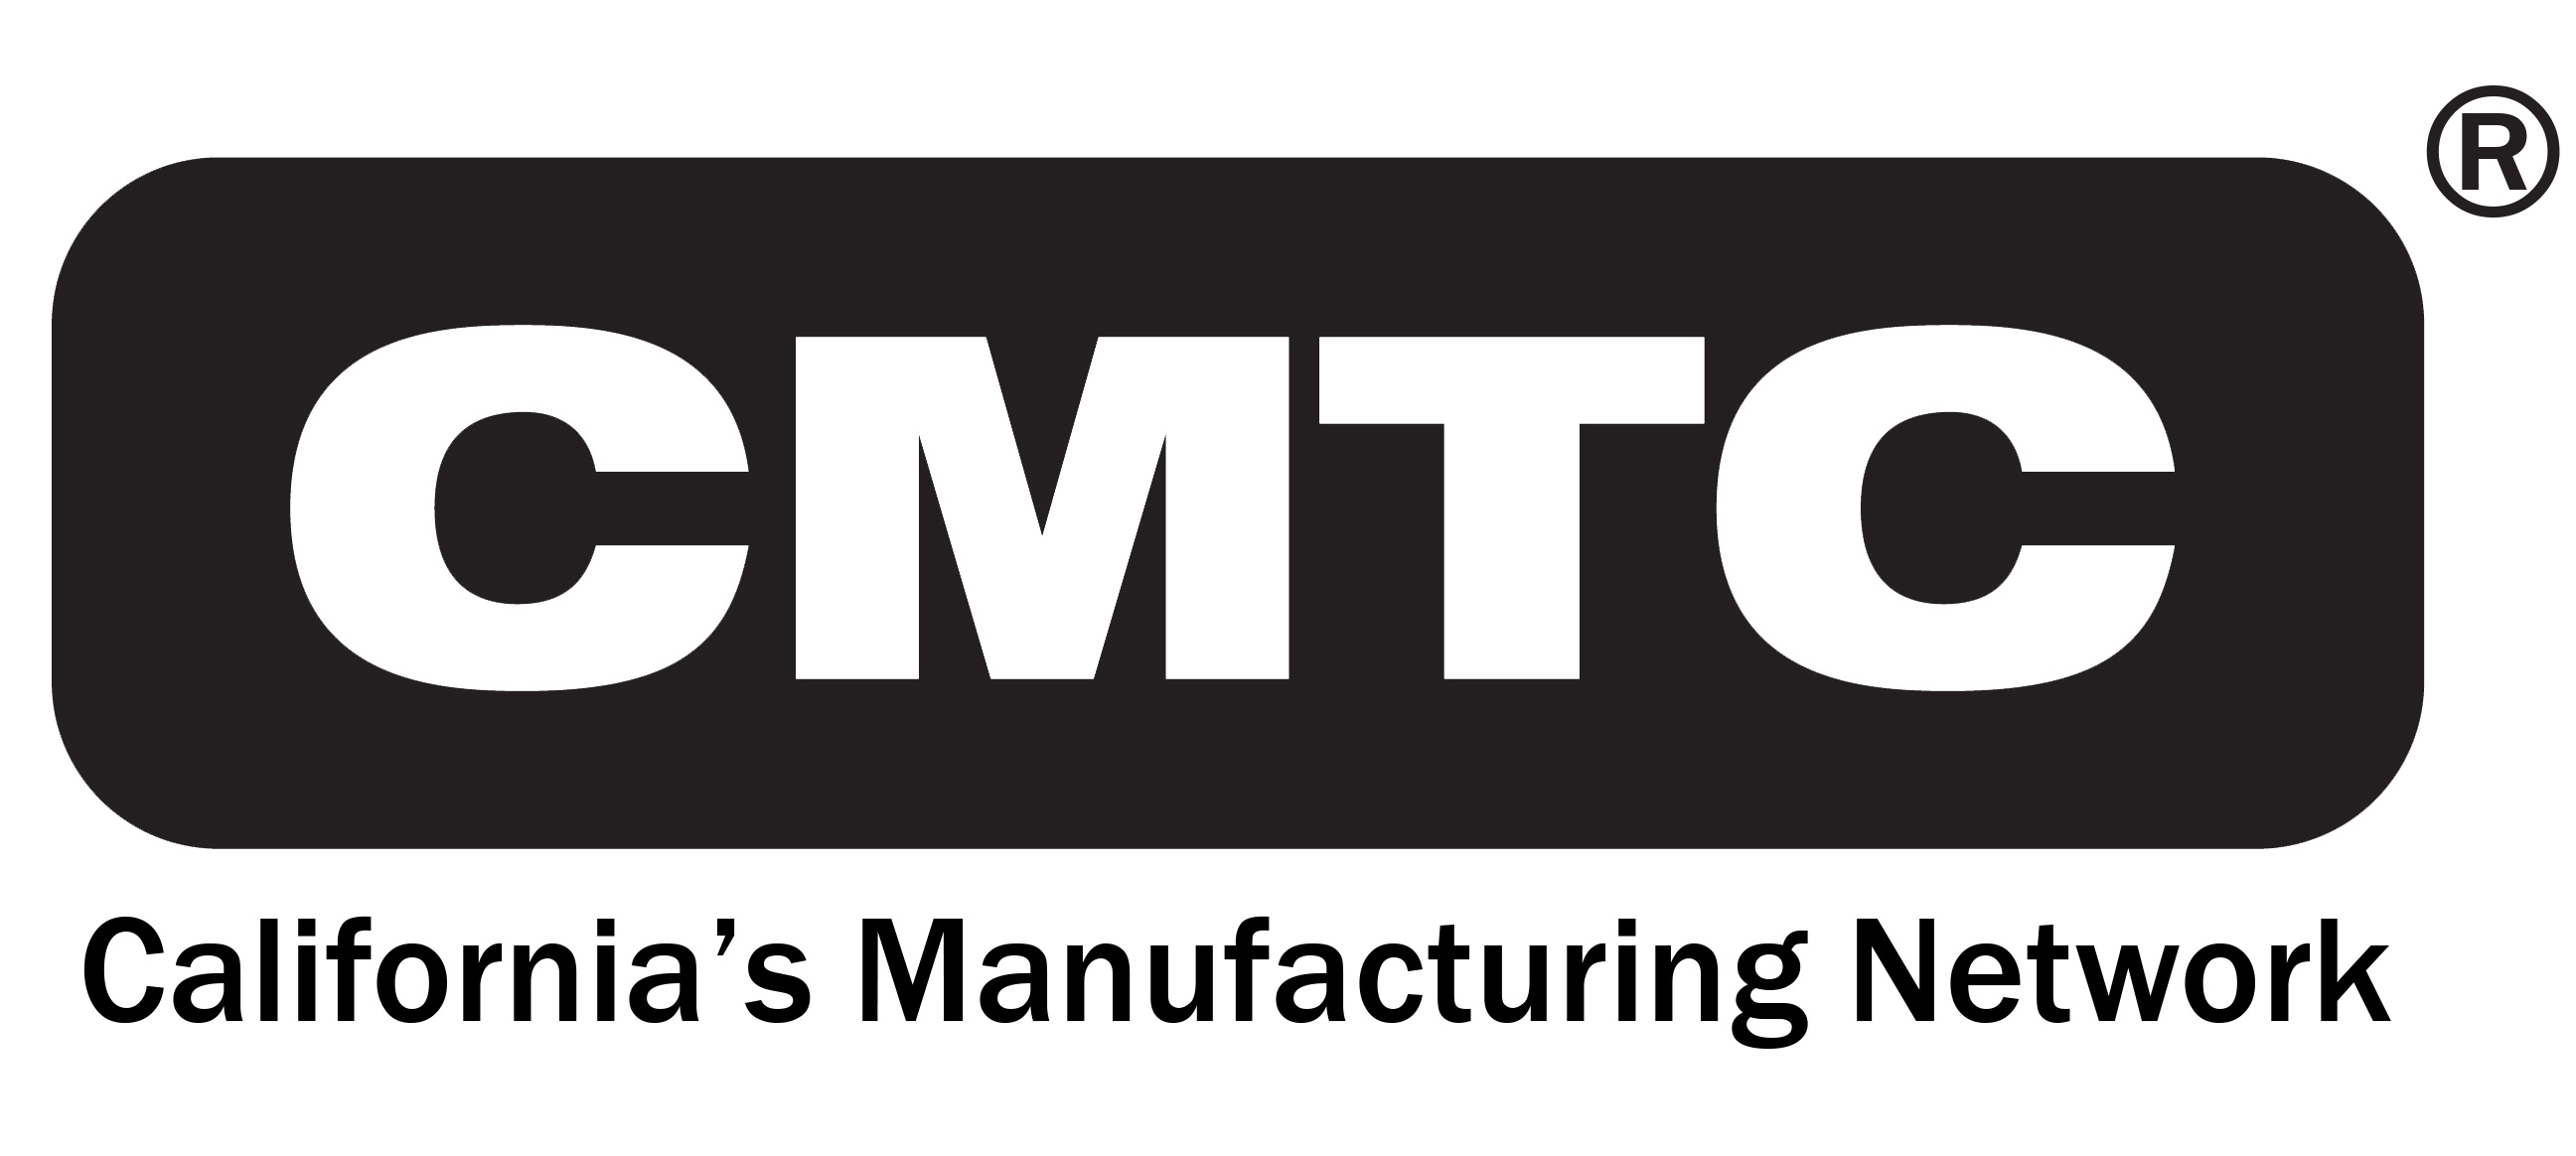 CMTC - California's Manufacturing Network